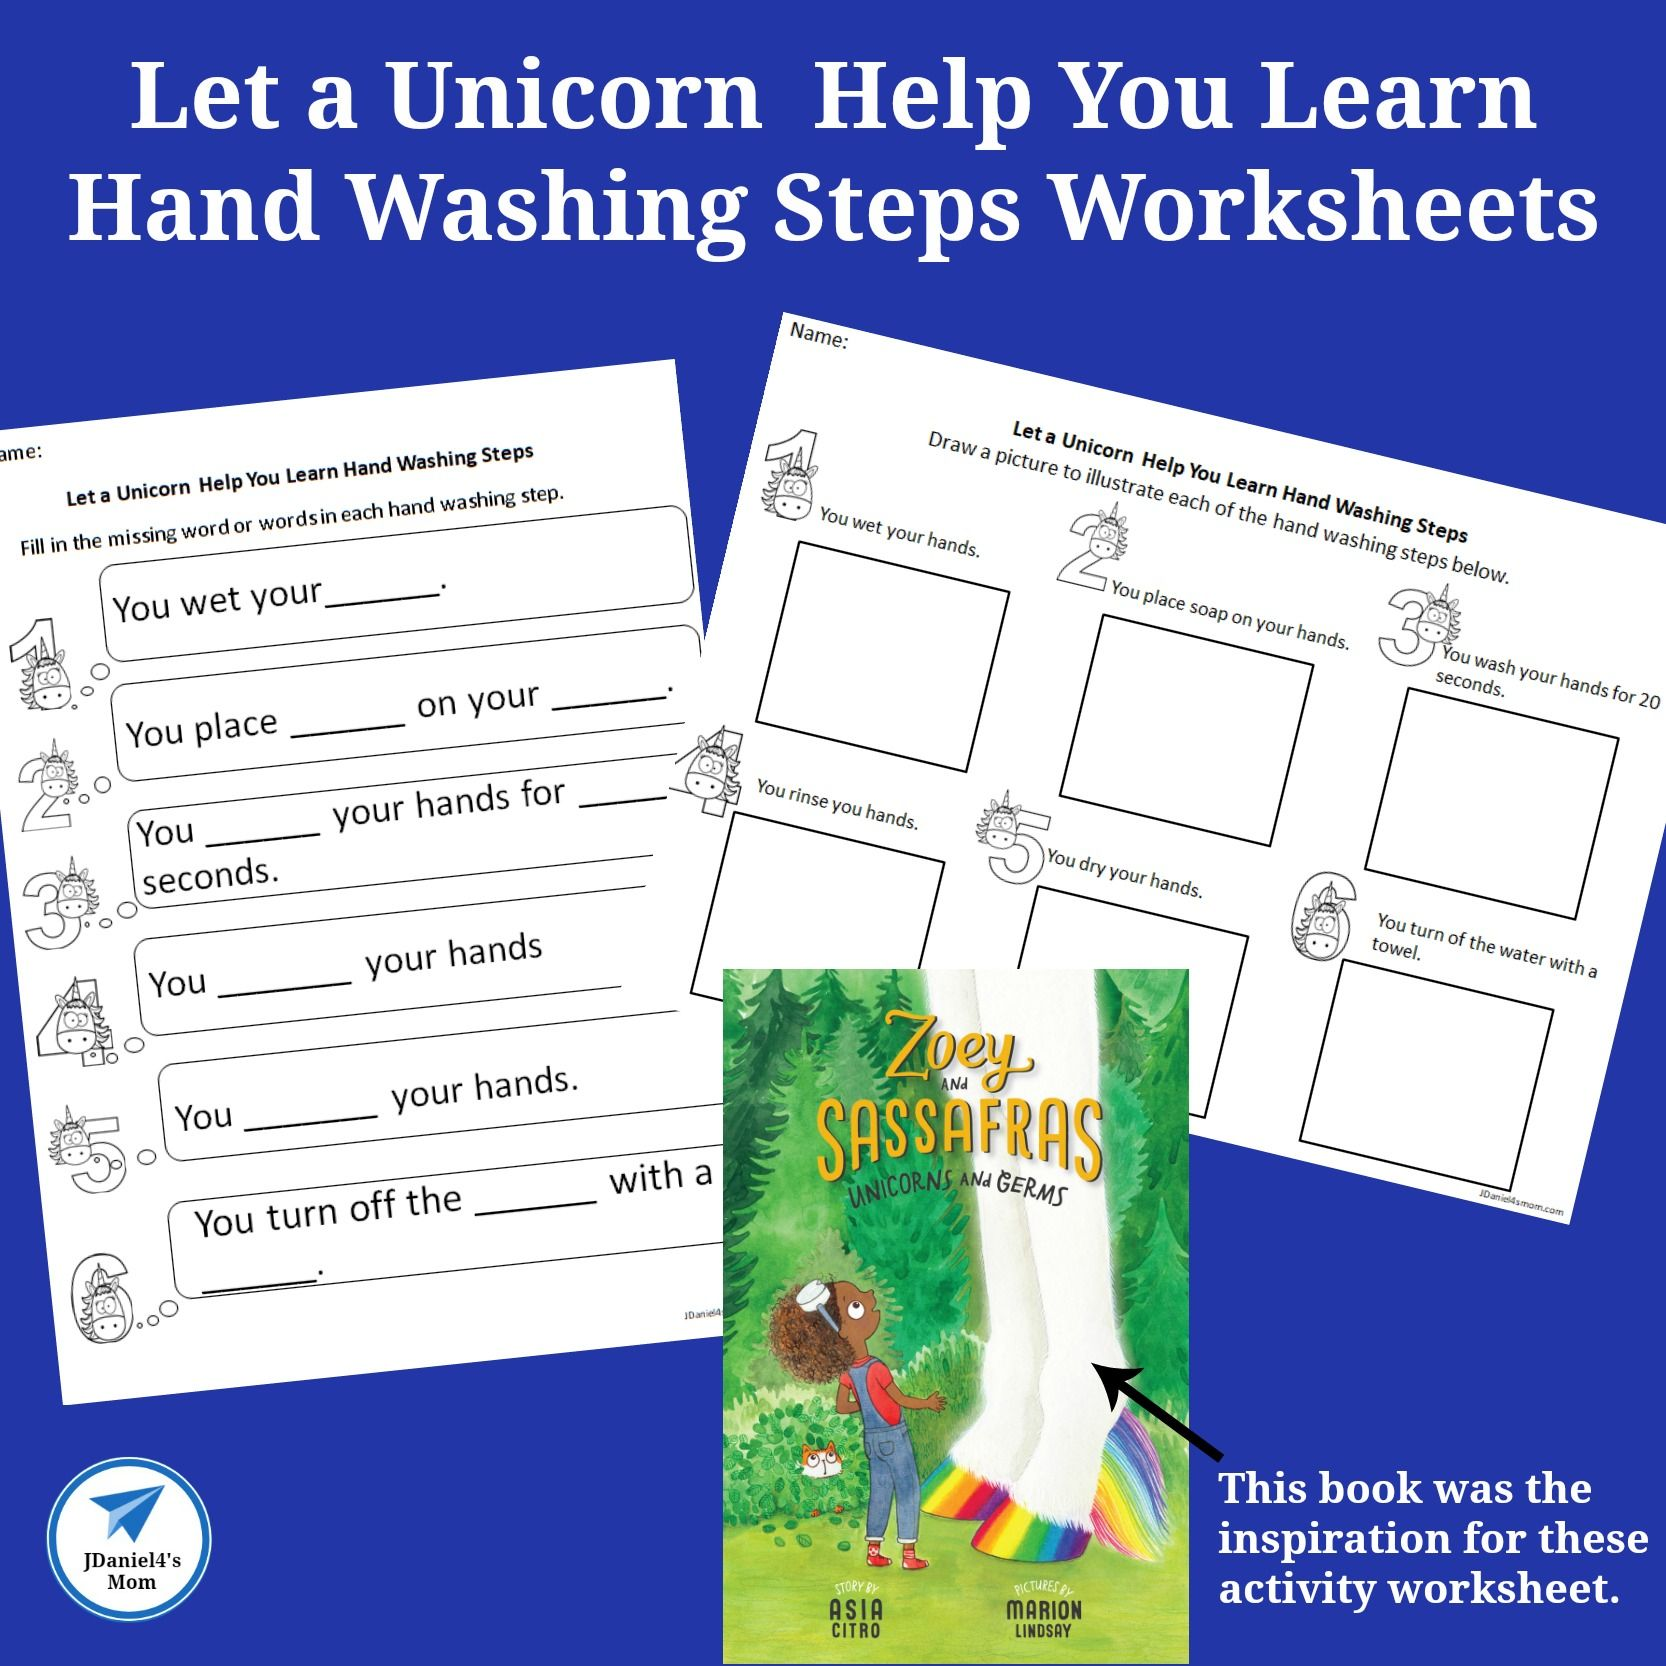 Let A Unicorn Help You Learn Hand Washing Steps Worksheets